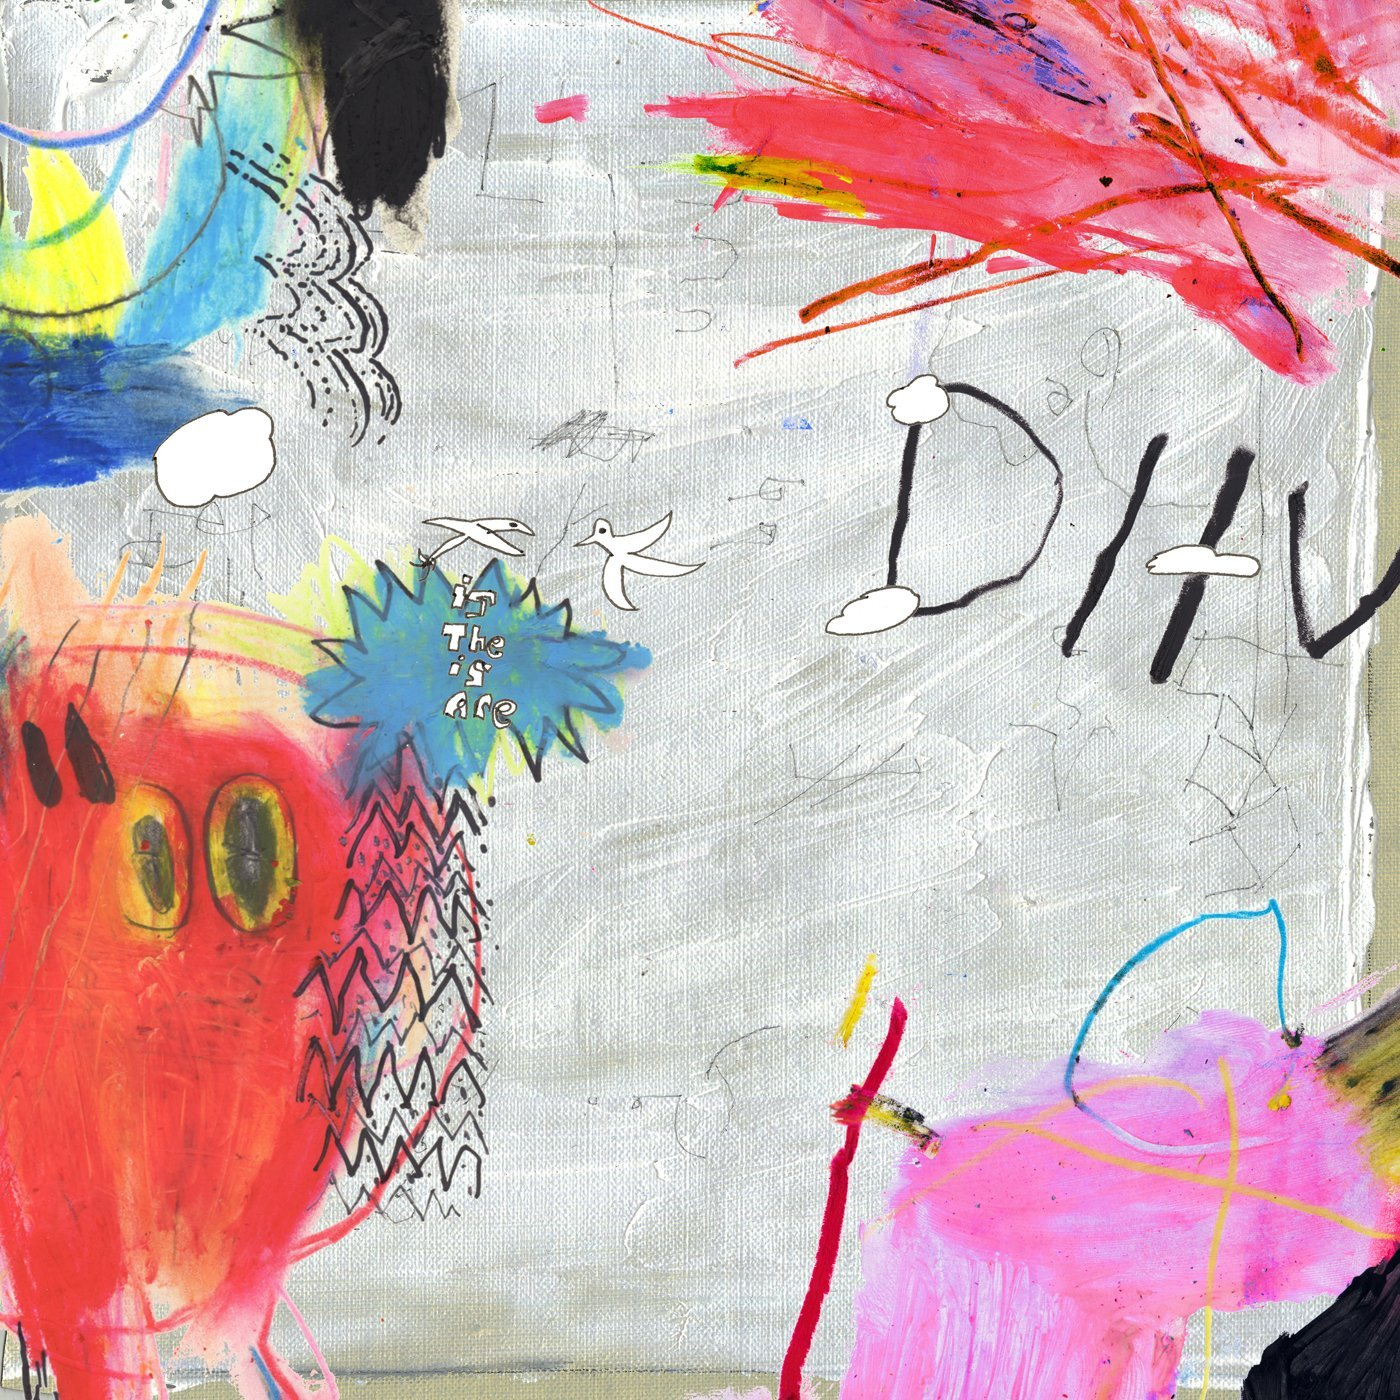 DIIV - Is The Is Are.jpg - 553.38 KB